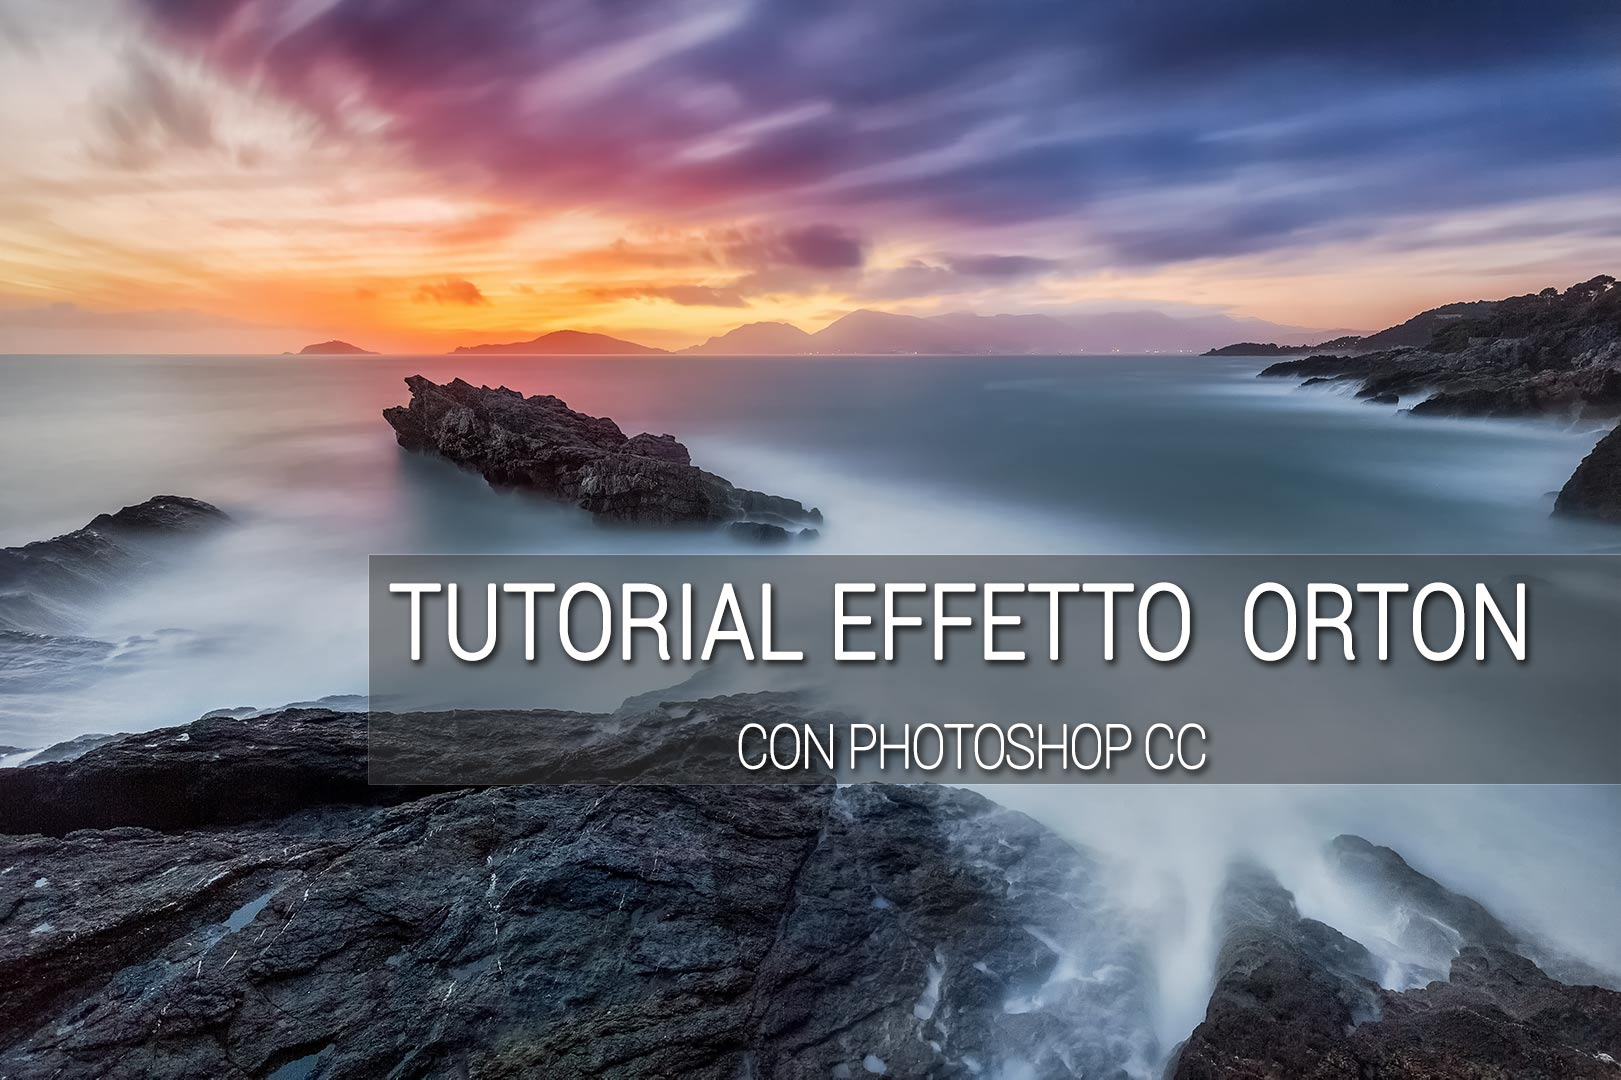 Tutorial Effetto Orton Photoshop